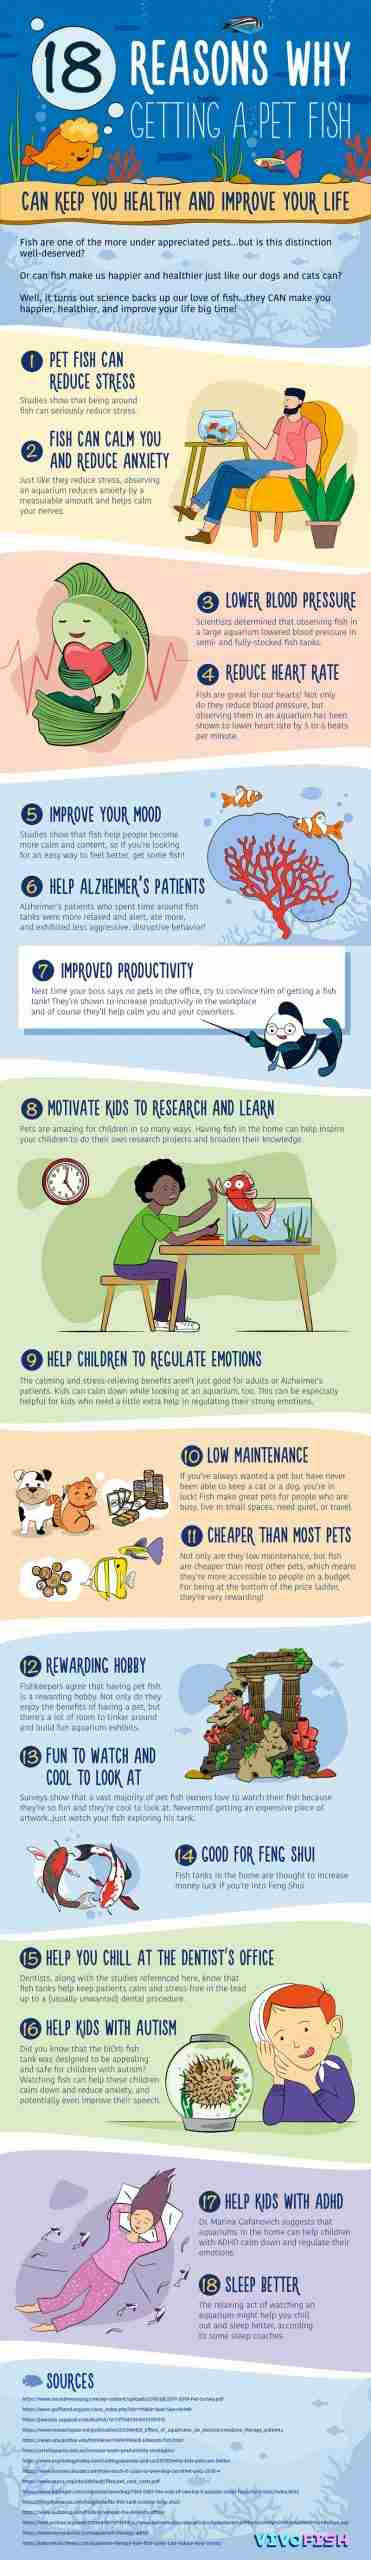 fishkeeping-benefits-infographic-med